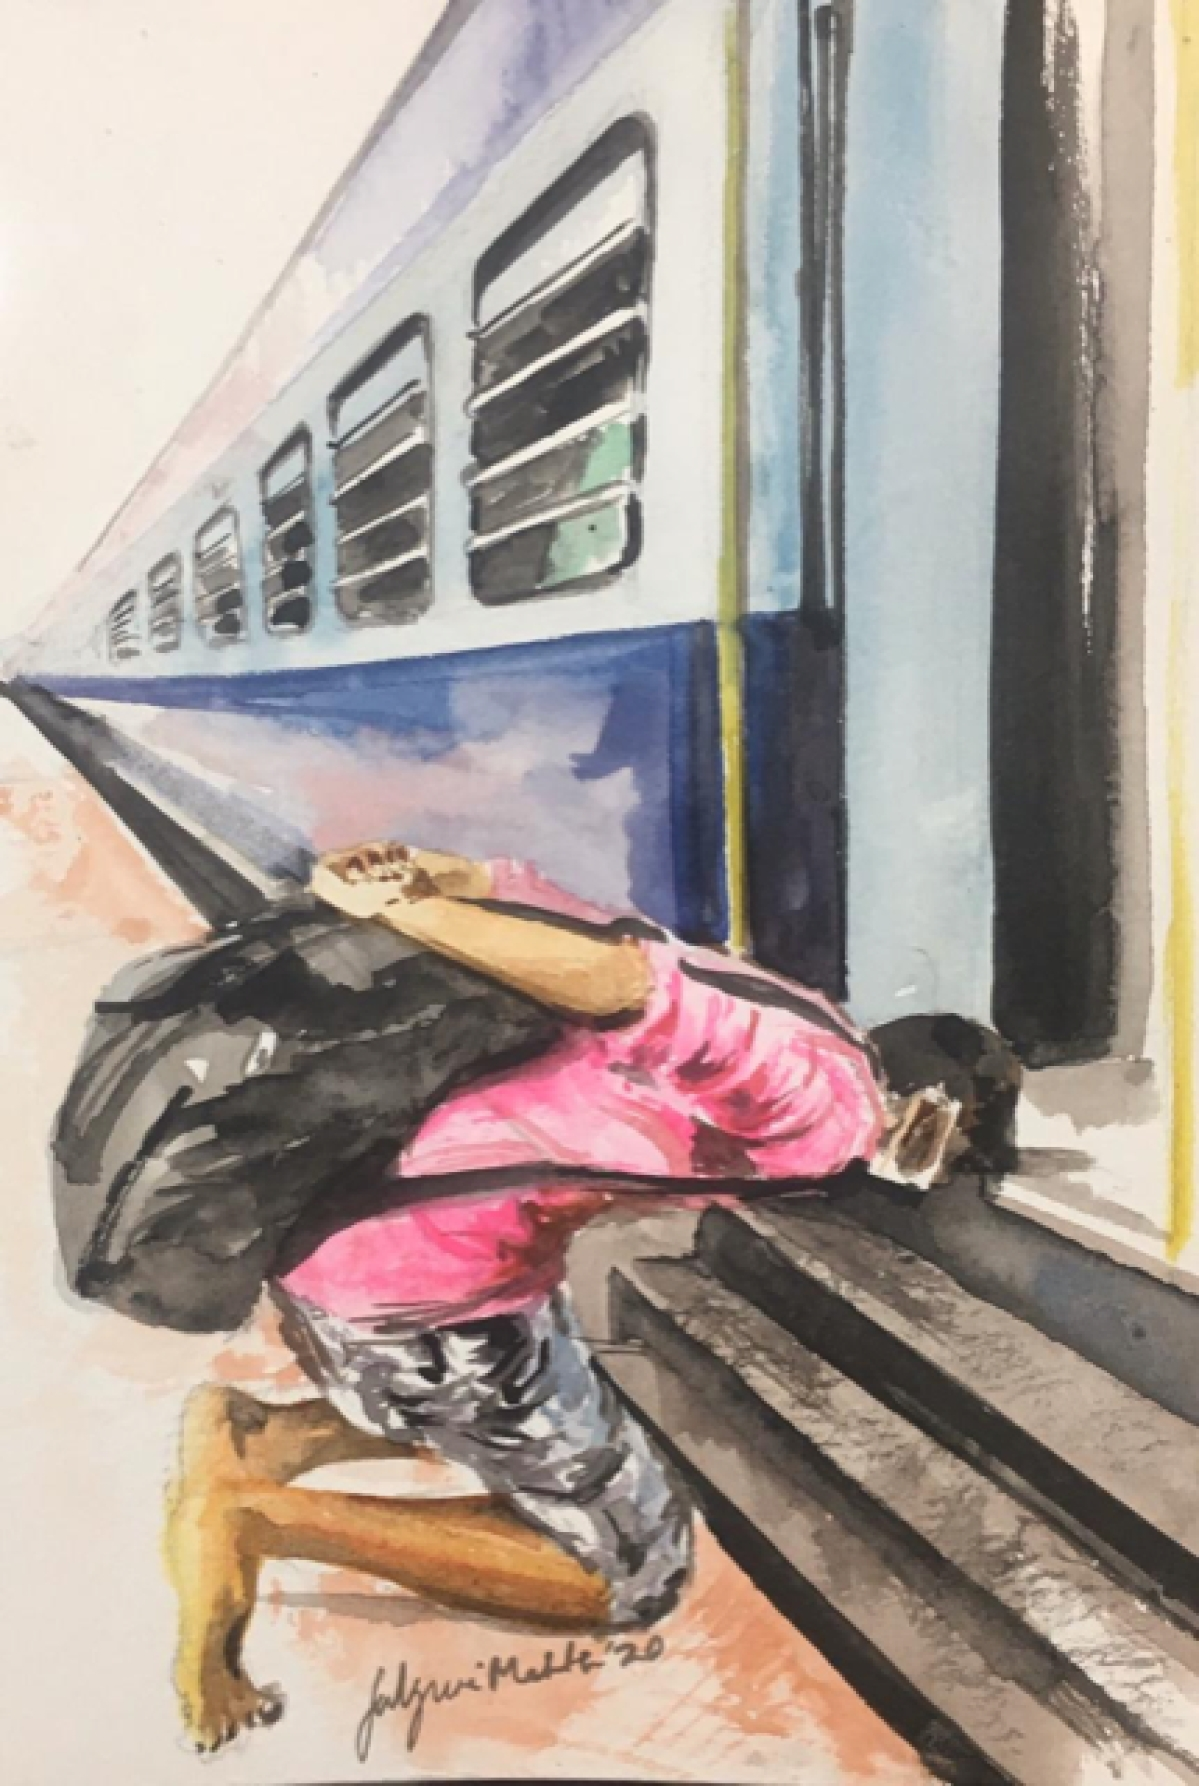 Temple, Church or Mosque, have shut their doors. None of them could feed me, give me shelter or any money.  Today, my God is this train, I bow down to thank you to finally take me to my home.. as I cannot deal with this selfish world!